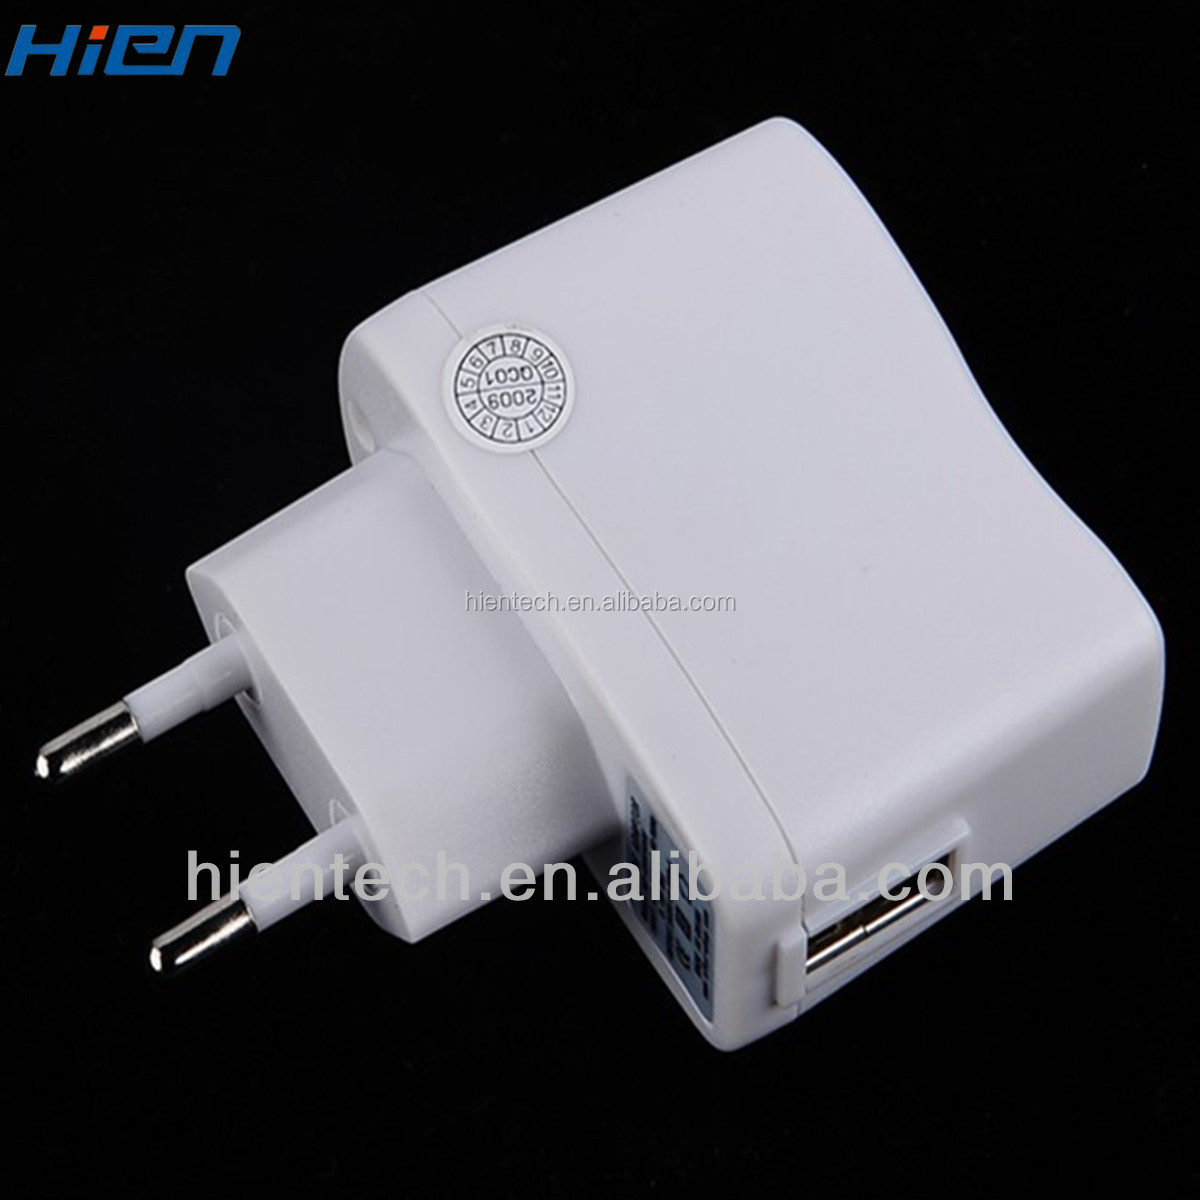 China 110v dc battery charger cell phone charger for handwriting screen usb output 5V1A quick charge UK US AU EU plug